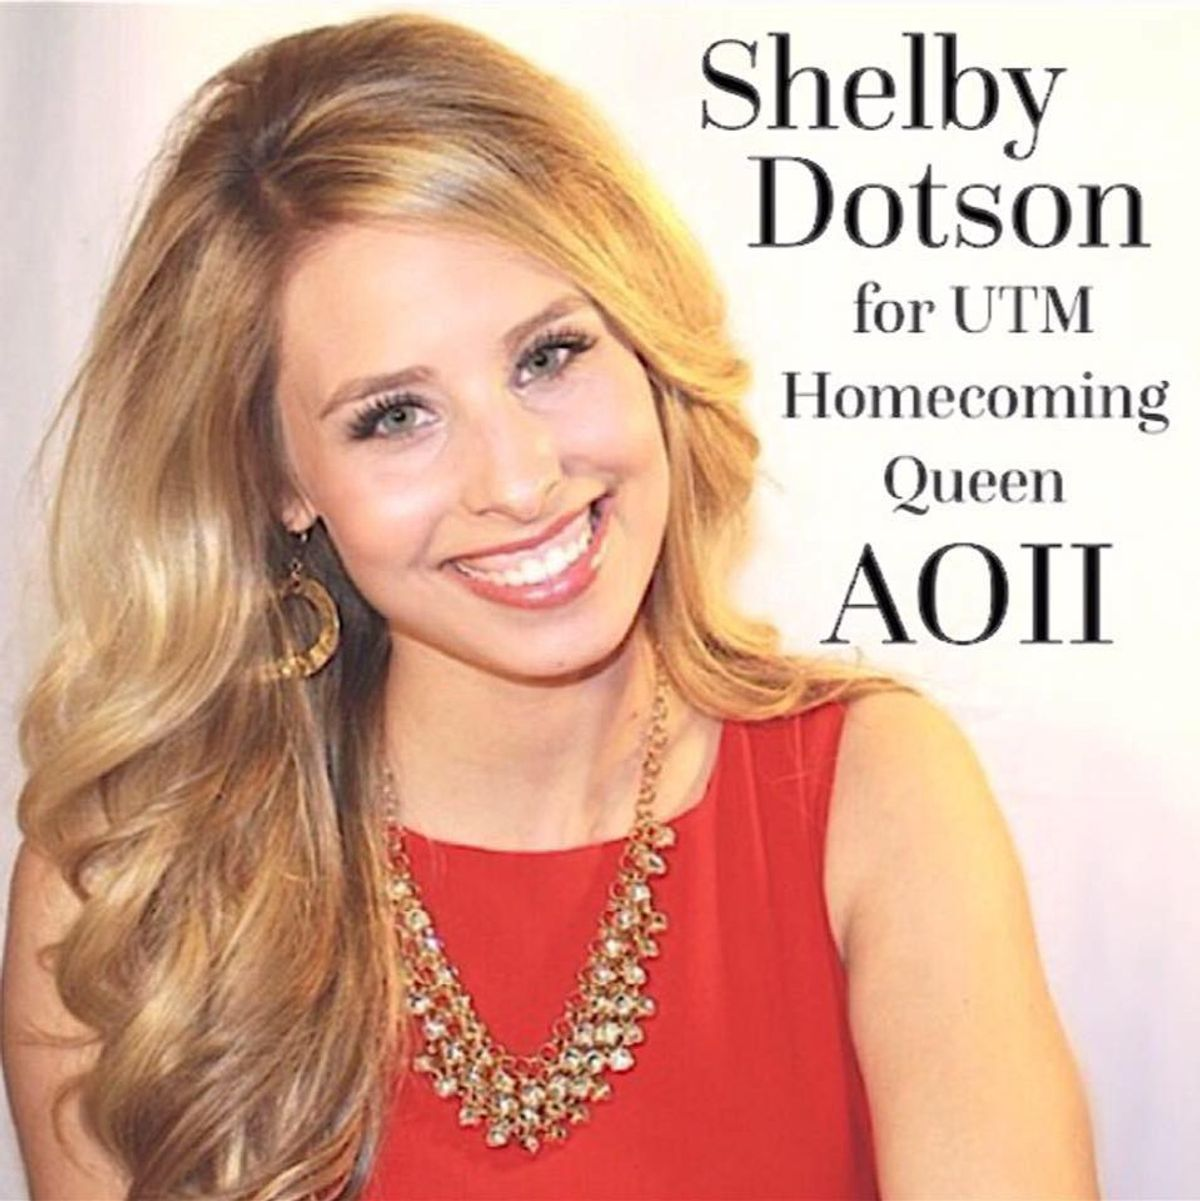 Shelby Dotson: UT Martin Homecoming Queen Nominee